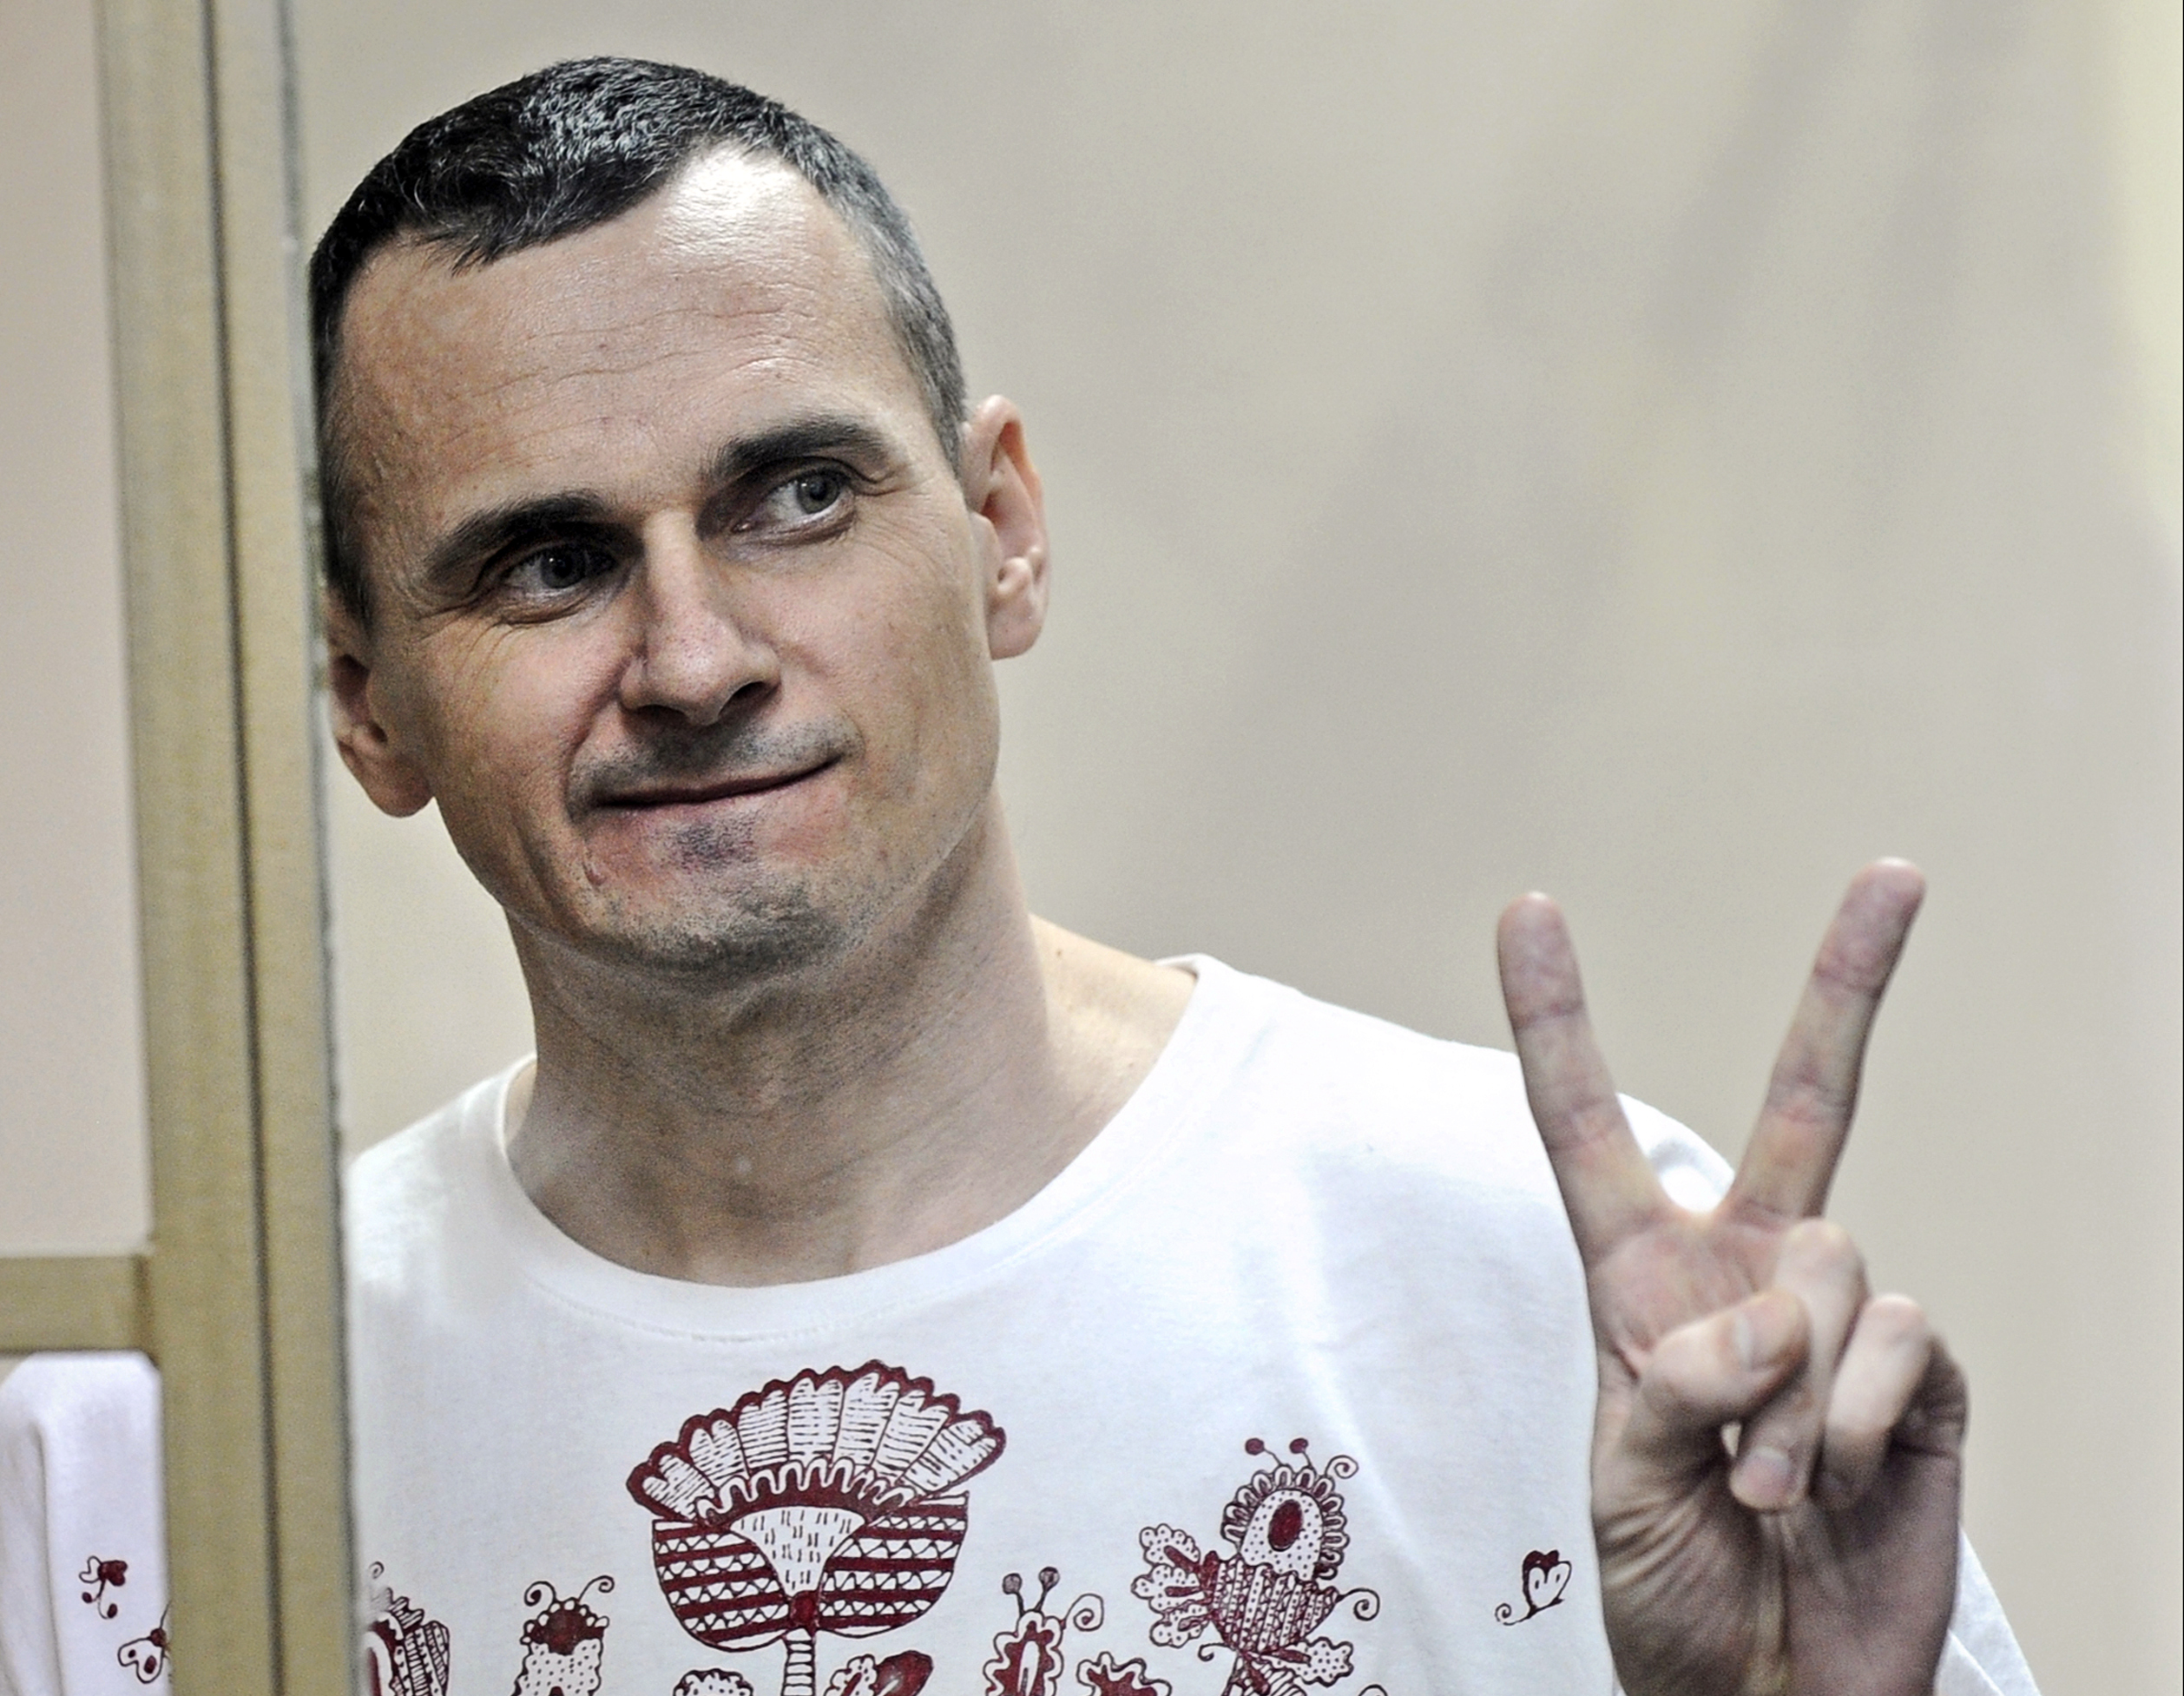 Oleg Sentsov gestures as the verdict is delivered, as he stands behind bars at a court in Rostov-on-Don, Russia, on Aug. 25, 2015